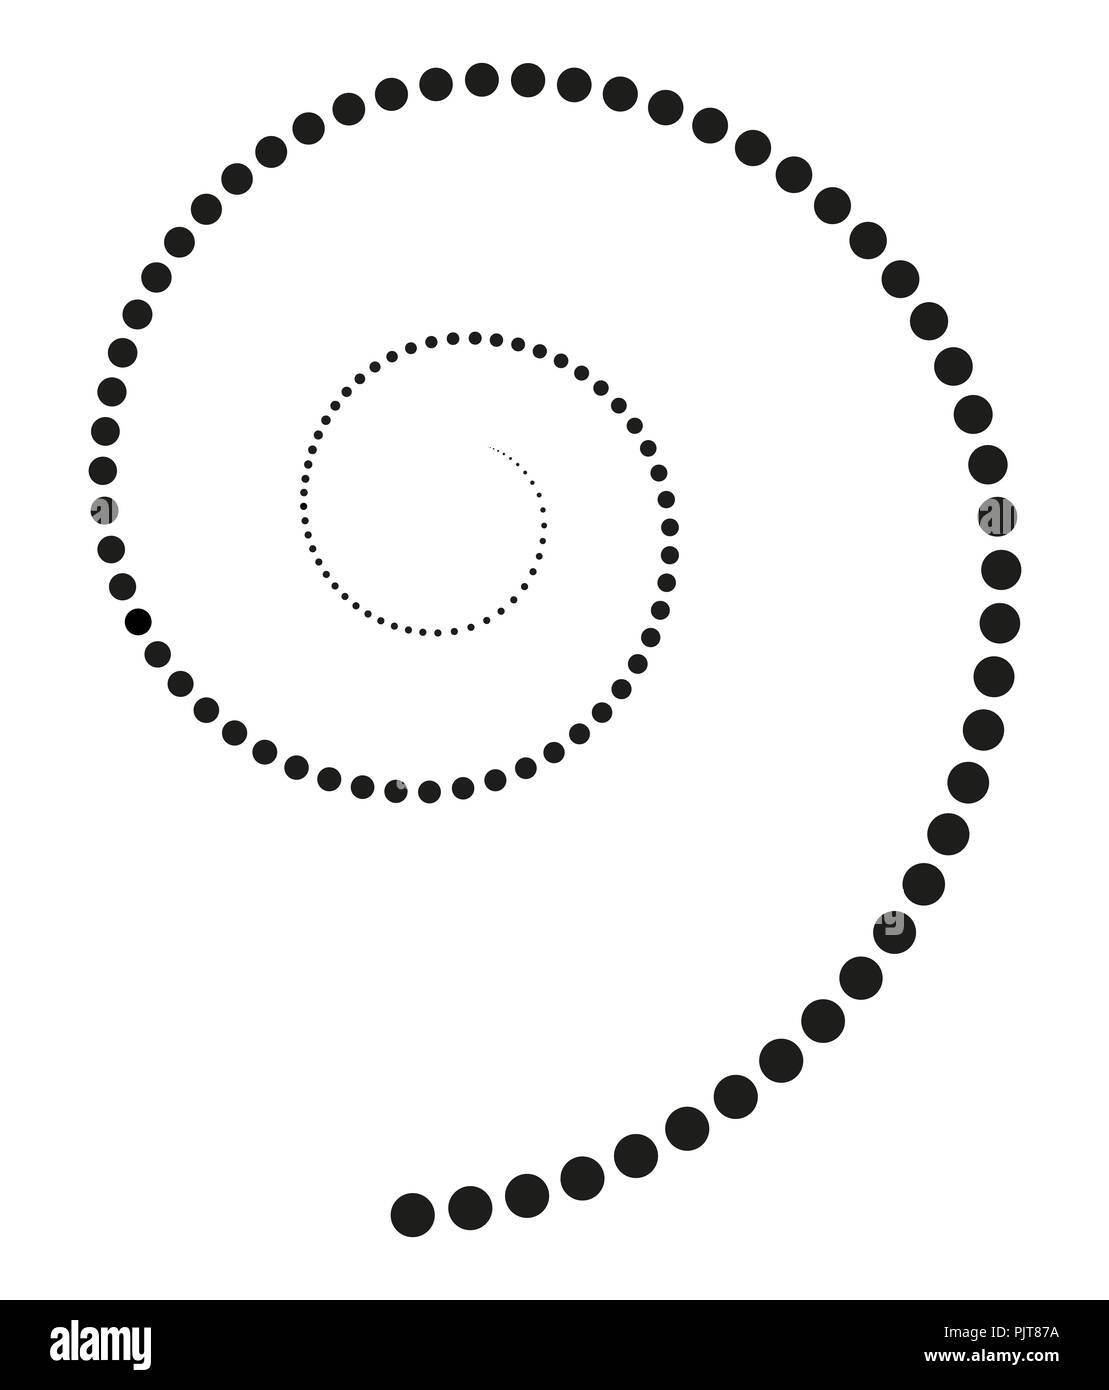 Black spiral made of increasing dots. Points from the center of the spiral getting bigger and forming a spiral. Black isolated illustration. - Stock Image